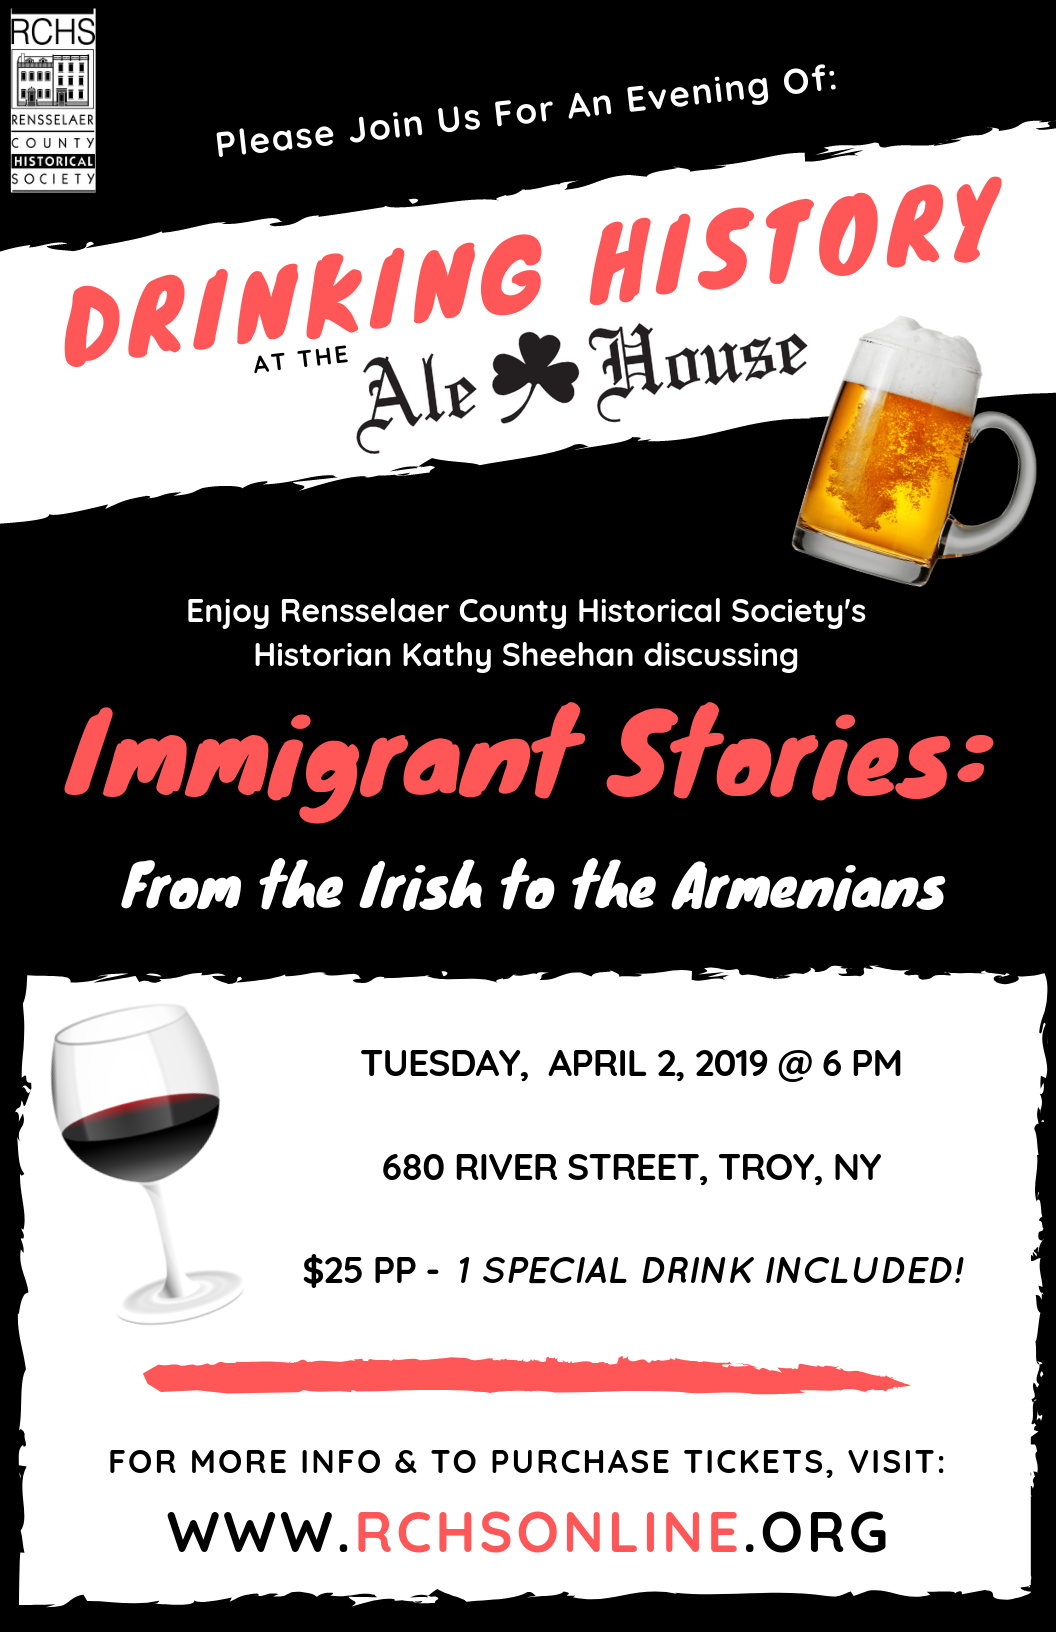 _REALLY FINAL Drinking History Event Poster 4-2-19.png